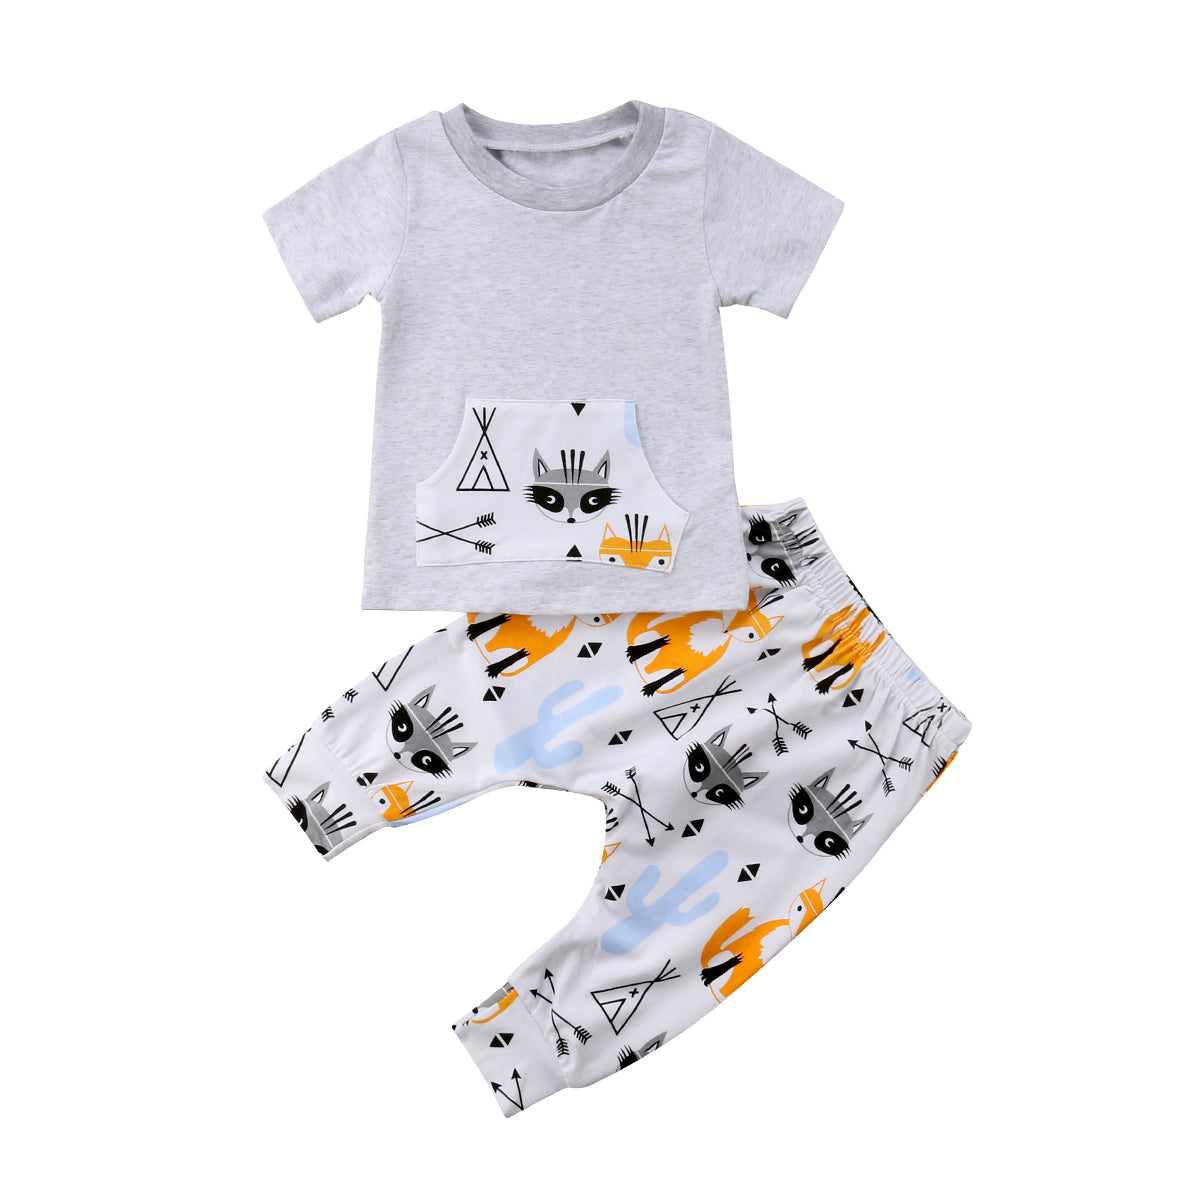 Newborn Kids Baby Boy Pocket Tops T-shirt +Fox Long Pants 2Pcs Outfit Set Clothes 0-2Years-eosegal